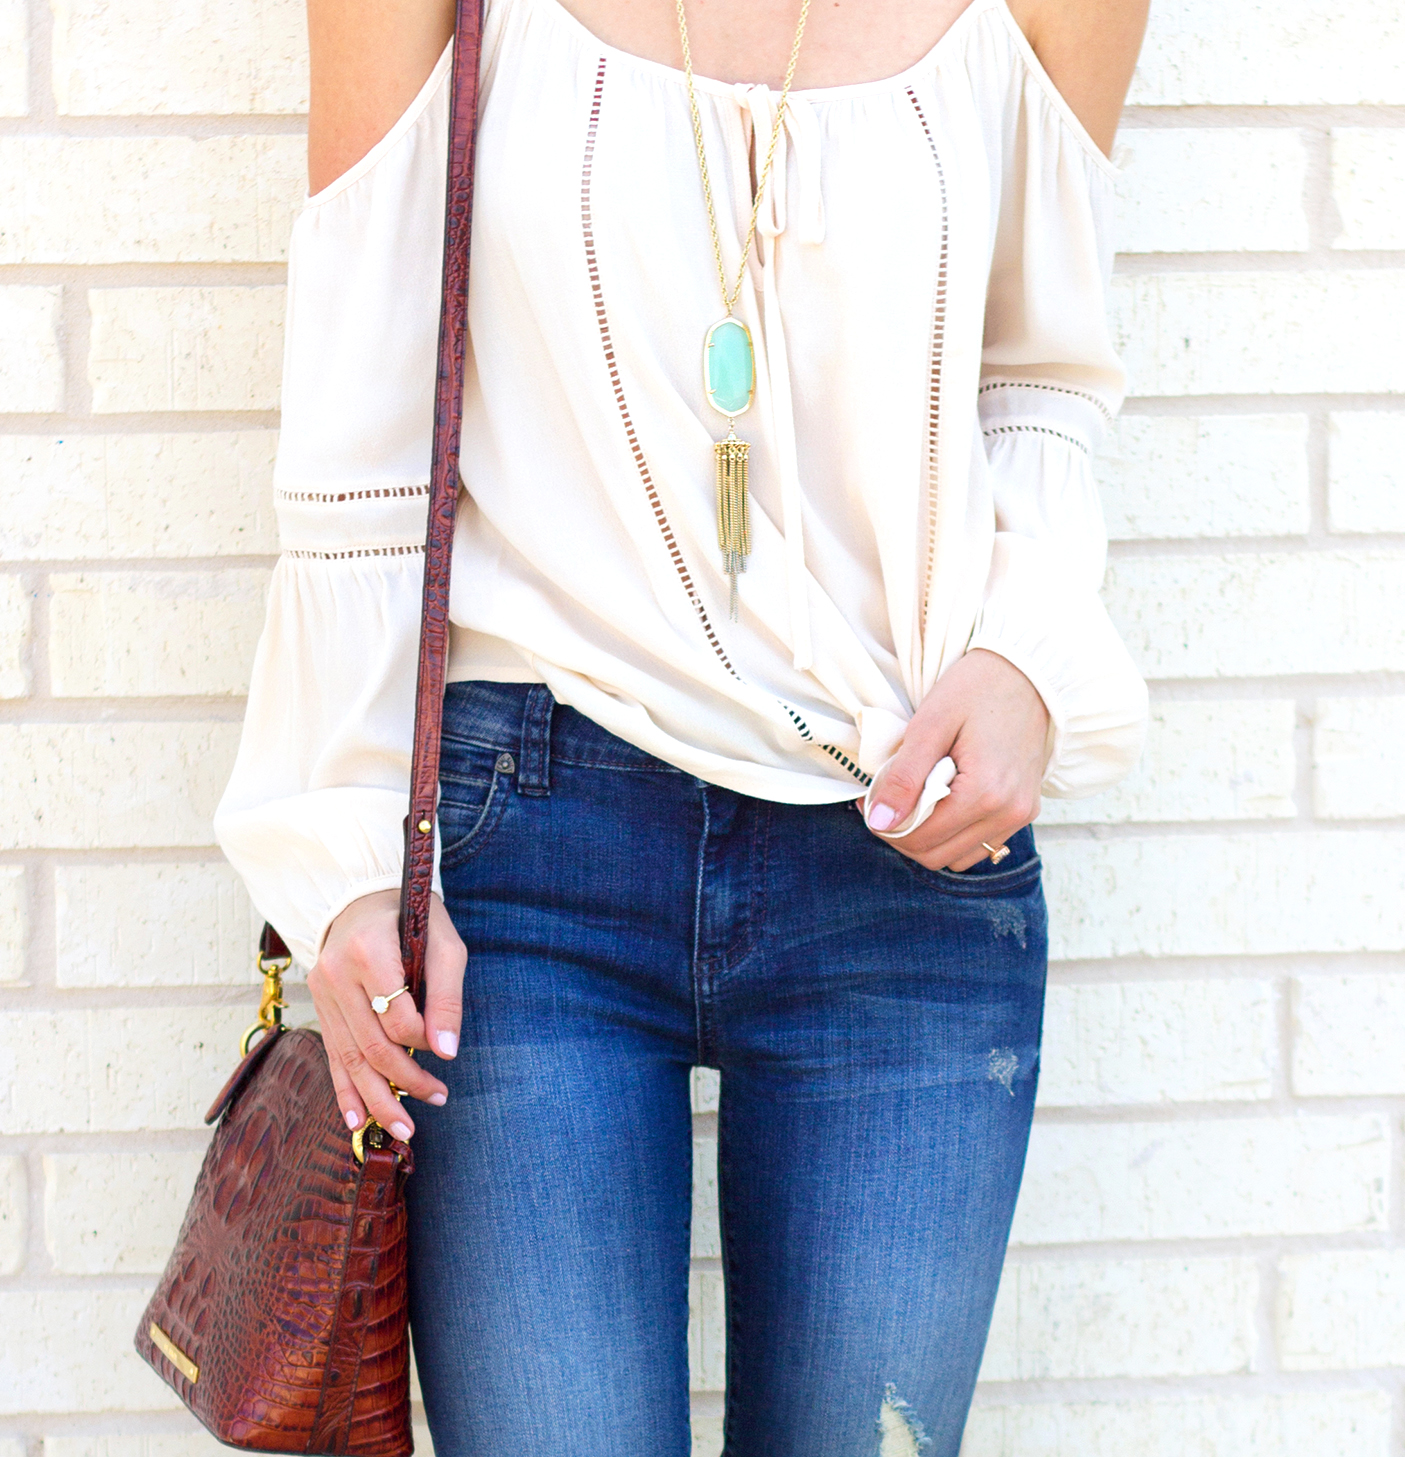 1-livvyland-blog-olivia-watson-austin-texas-fashion-blogger-kut-against-the-kloth-skinny-jeans-cream-nude-cold-shoulder-off-top-spring-nordstrom-stecy-heels-steve-madden-6